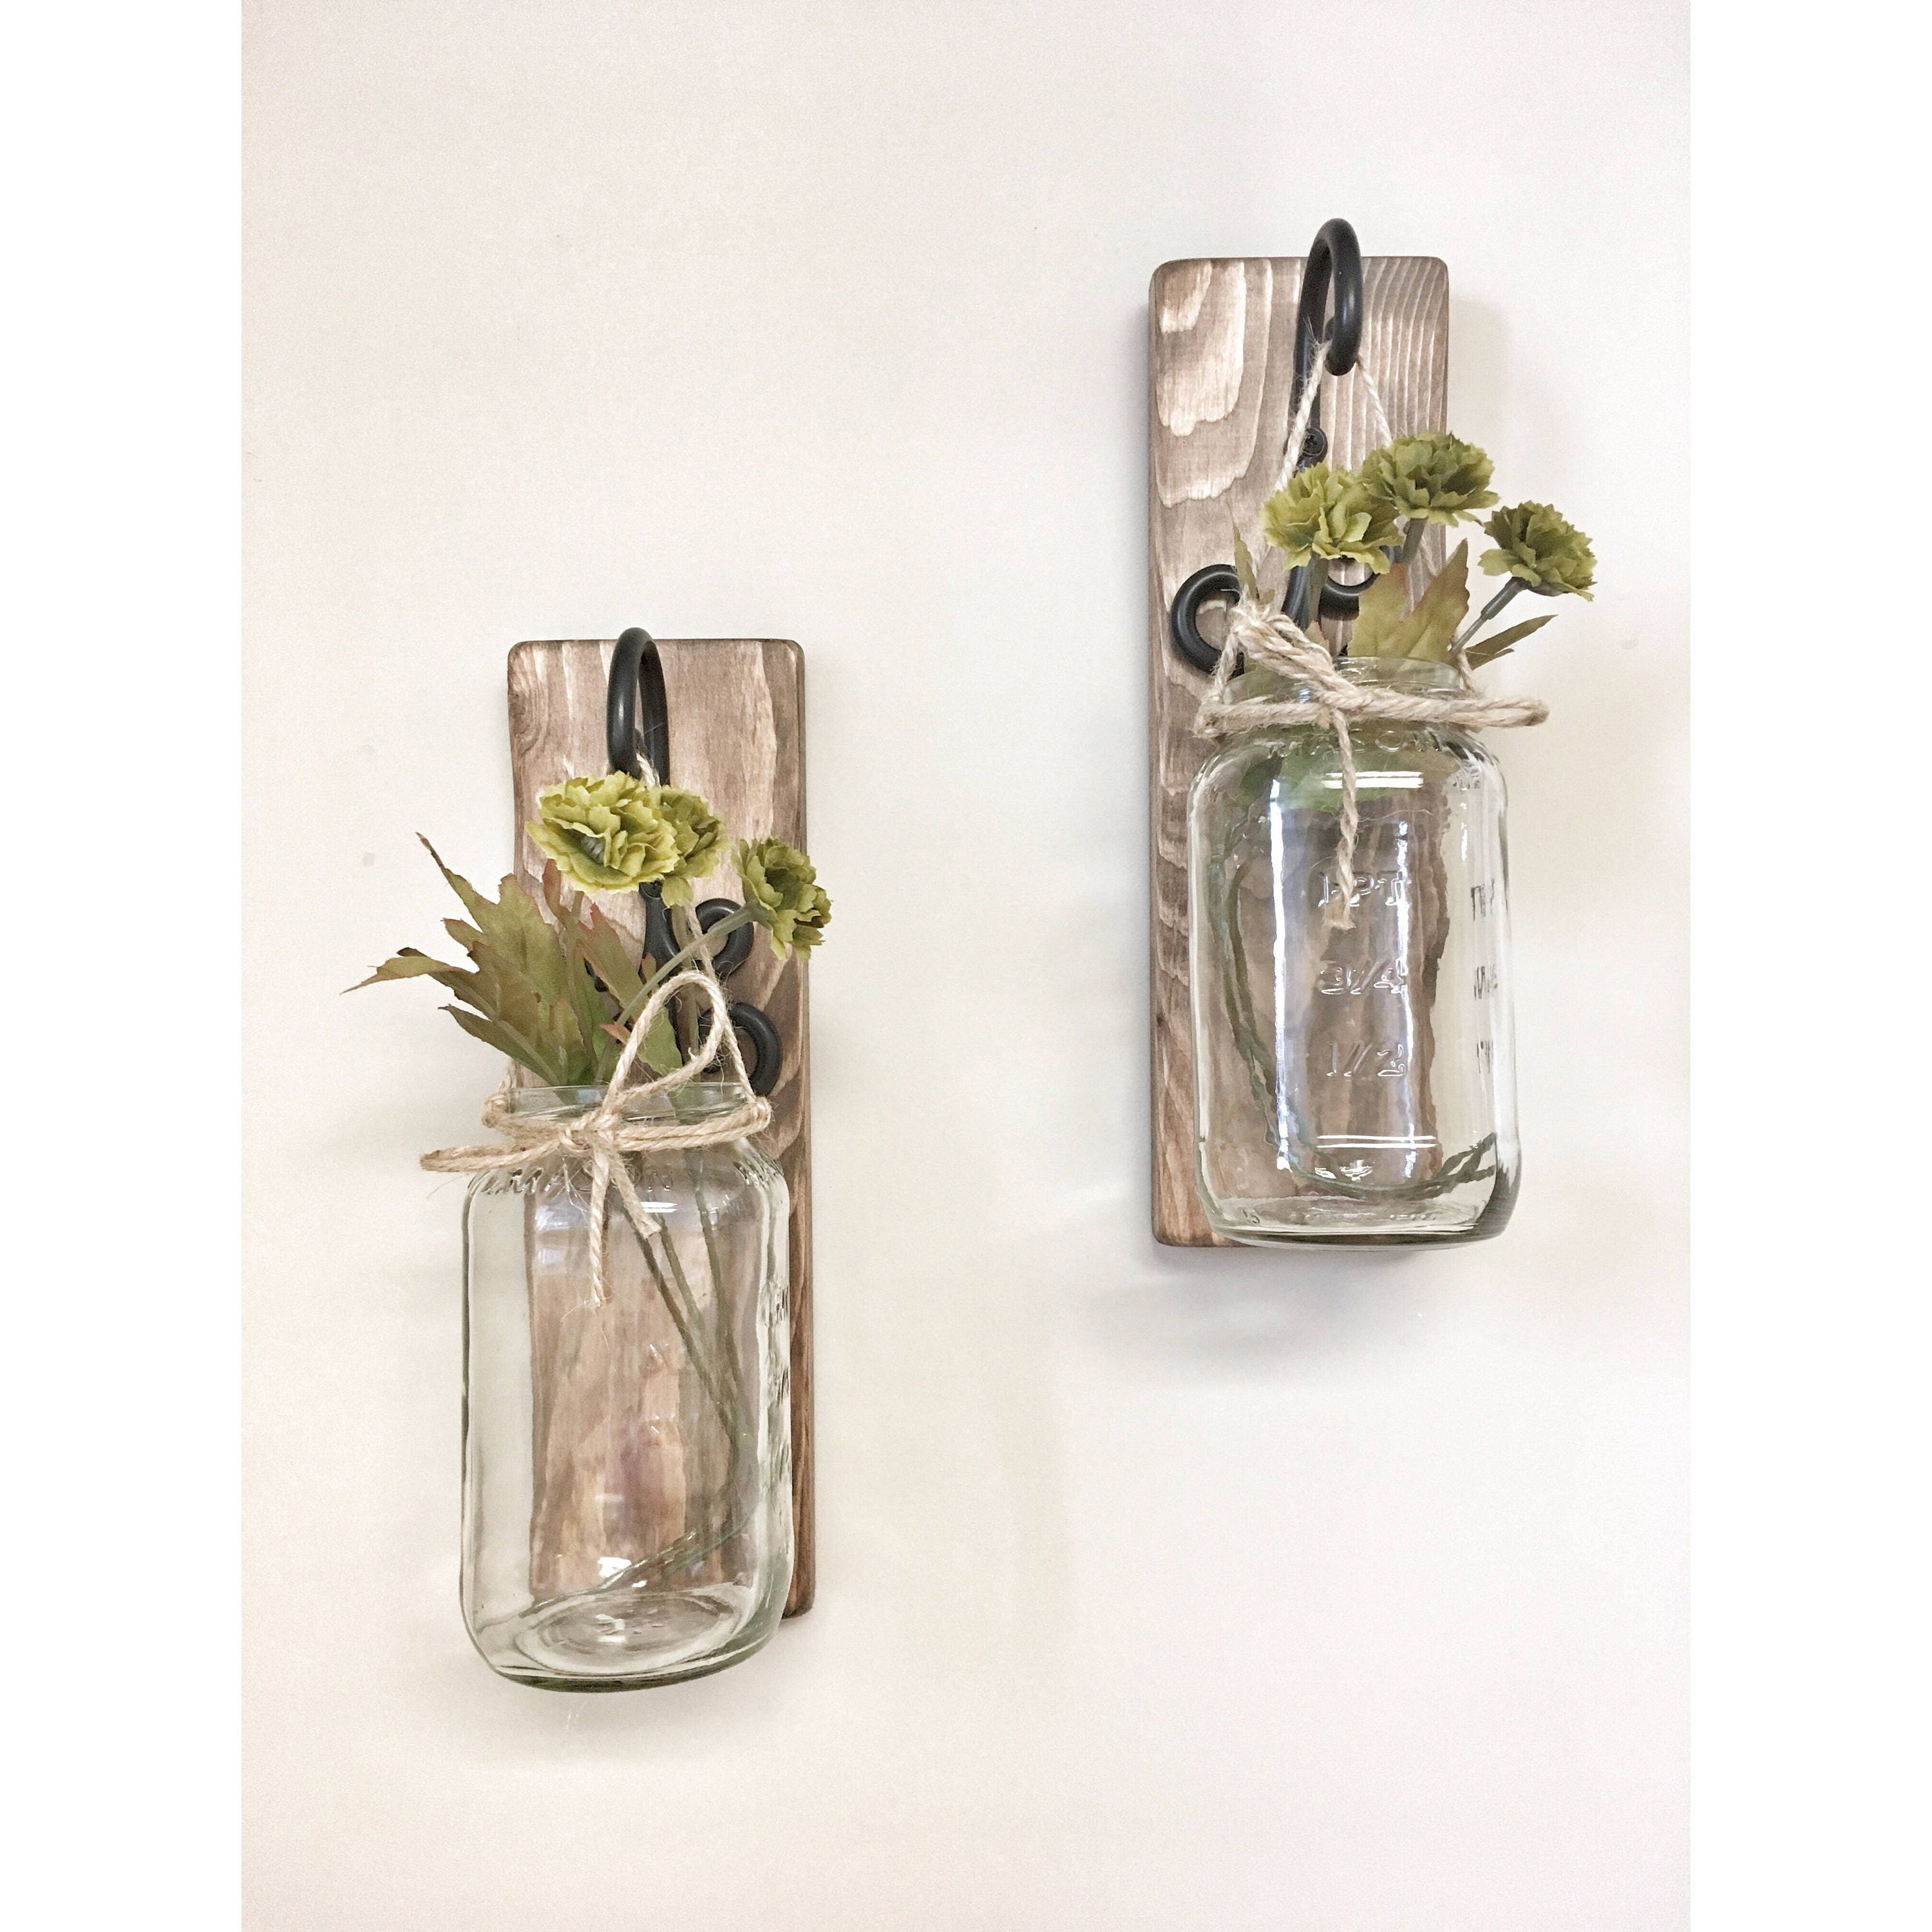 Skyrim Wall Sconces Not Working: Rustic Set Of Two Mason Jar Wall Sconces Country Decor